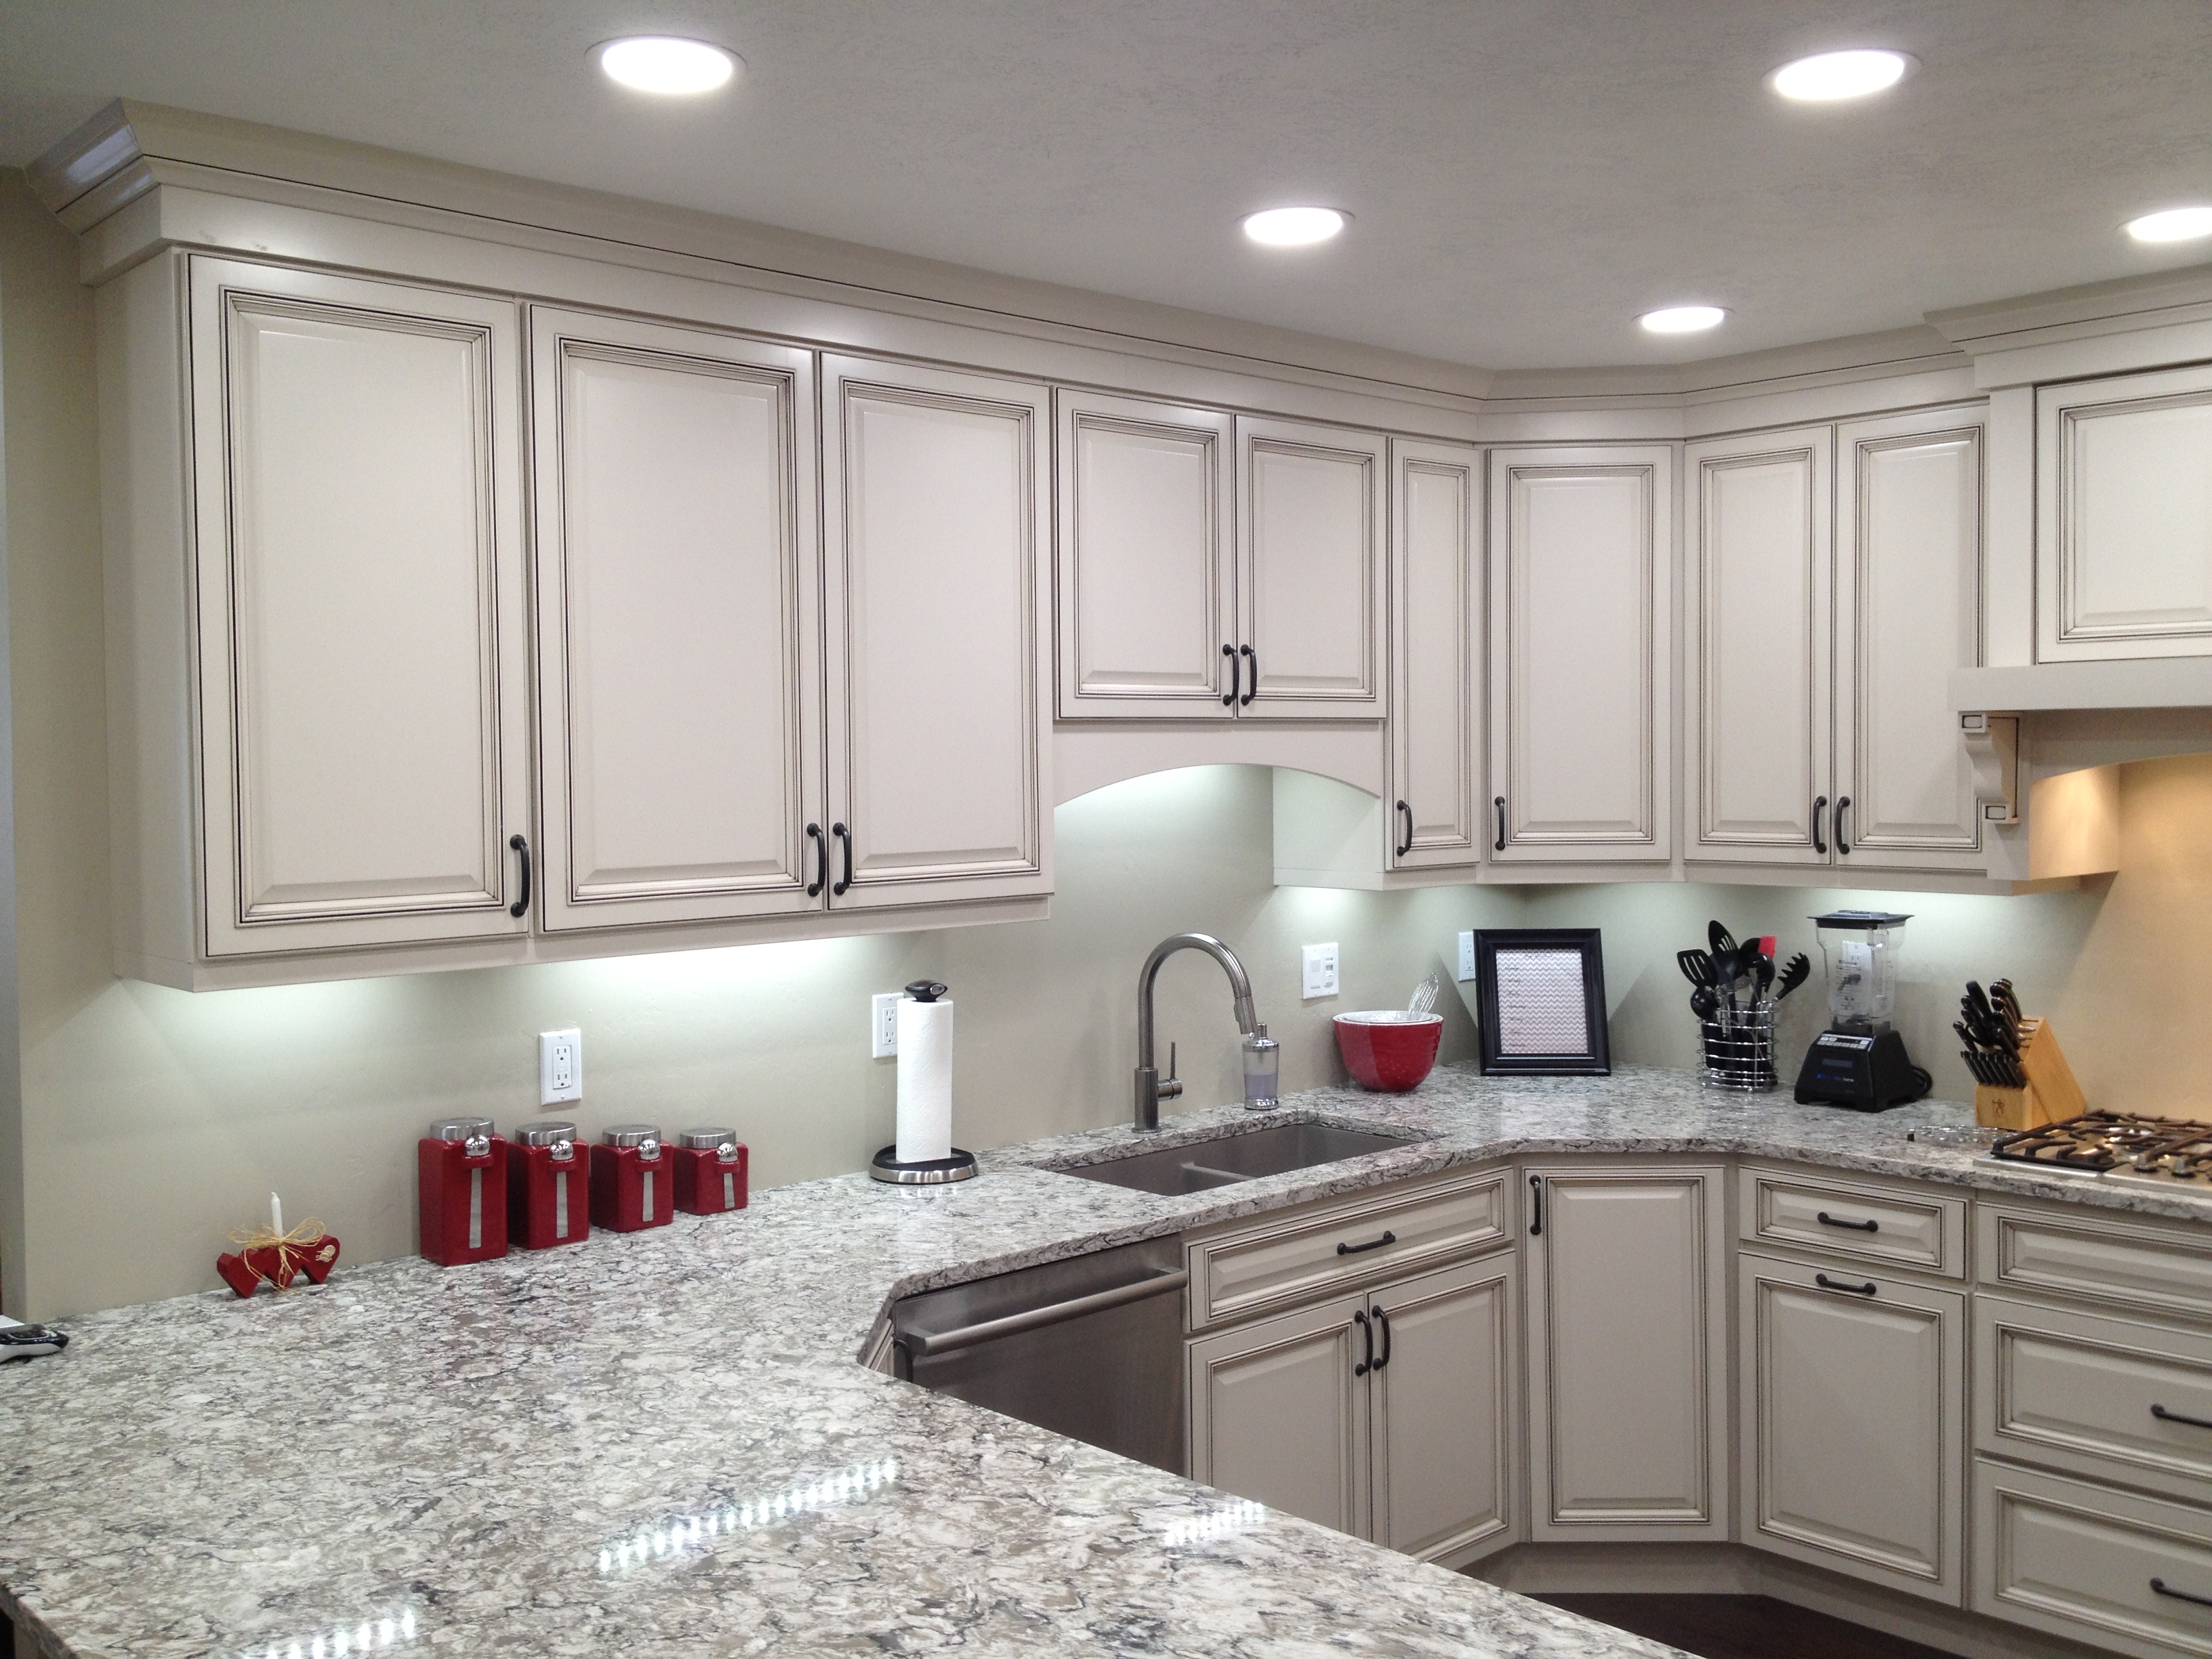 wireless led under cabinet lighting kitchen under cabinet lighting Pax LED Under cabinet lighting